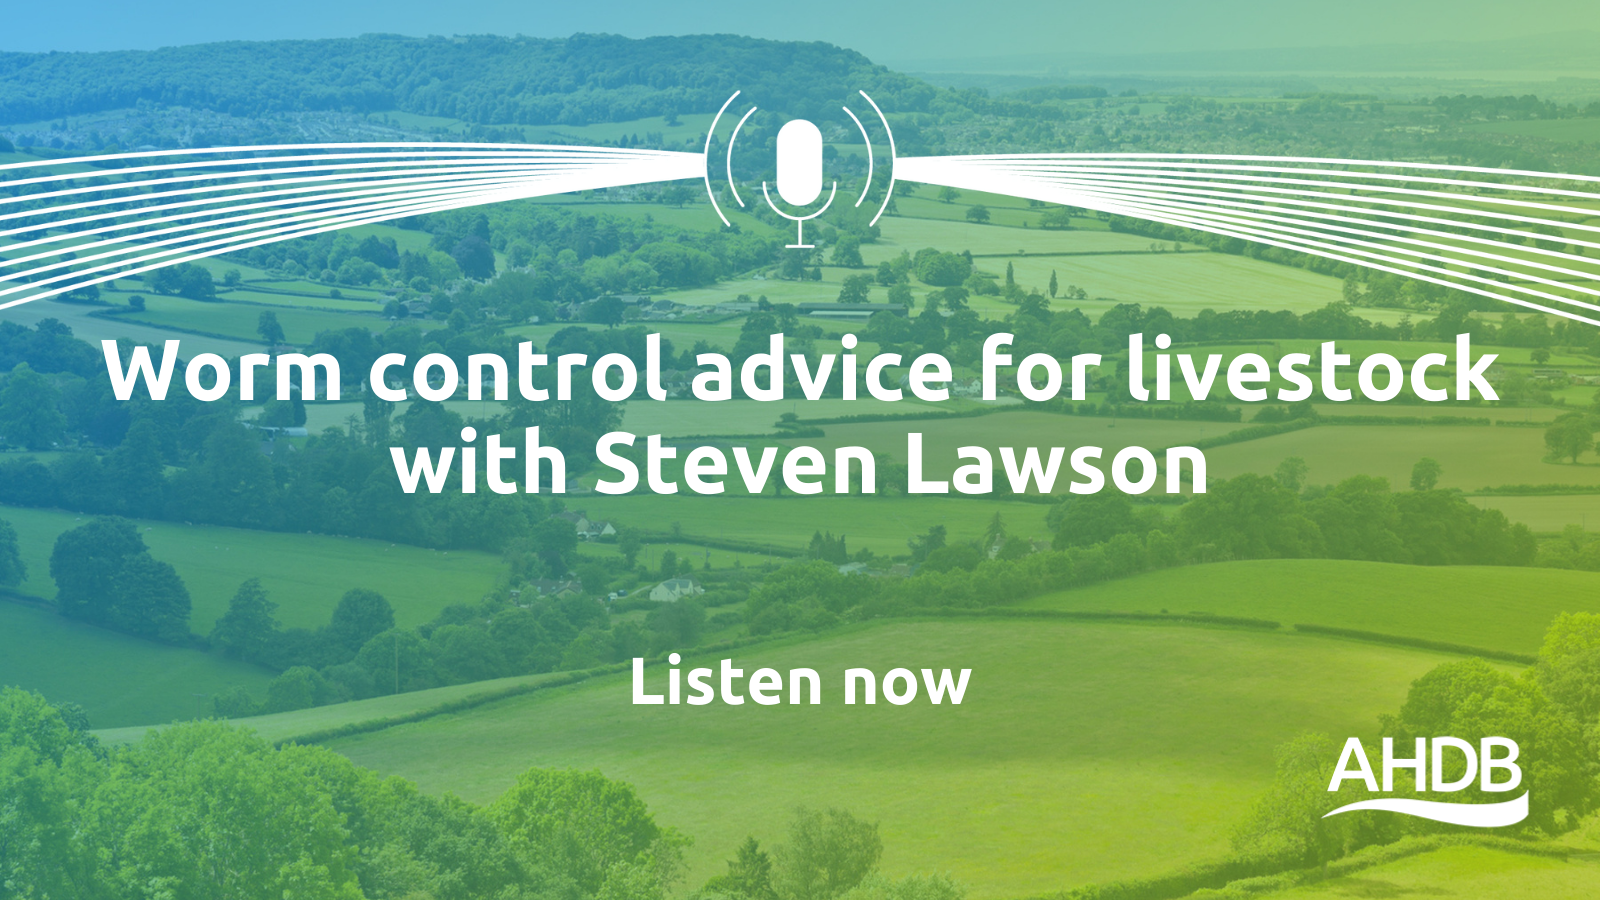 This podcast explores how Steven Lawson manages worms and other parasites in his livestock.